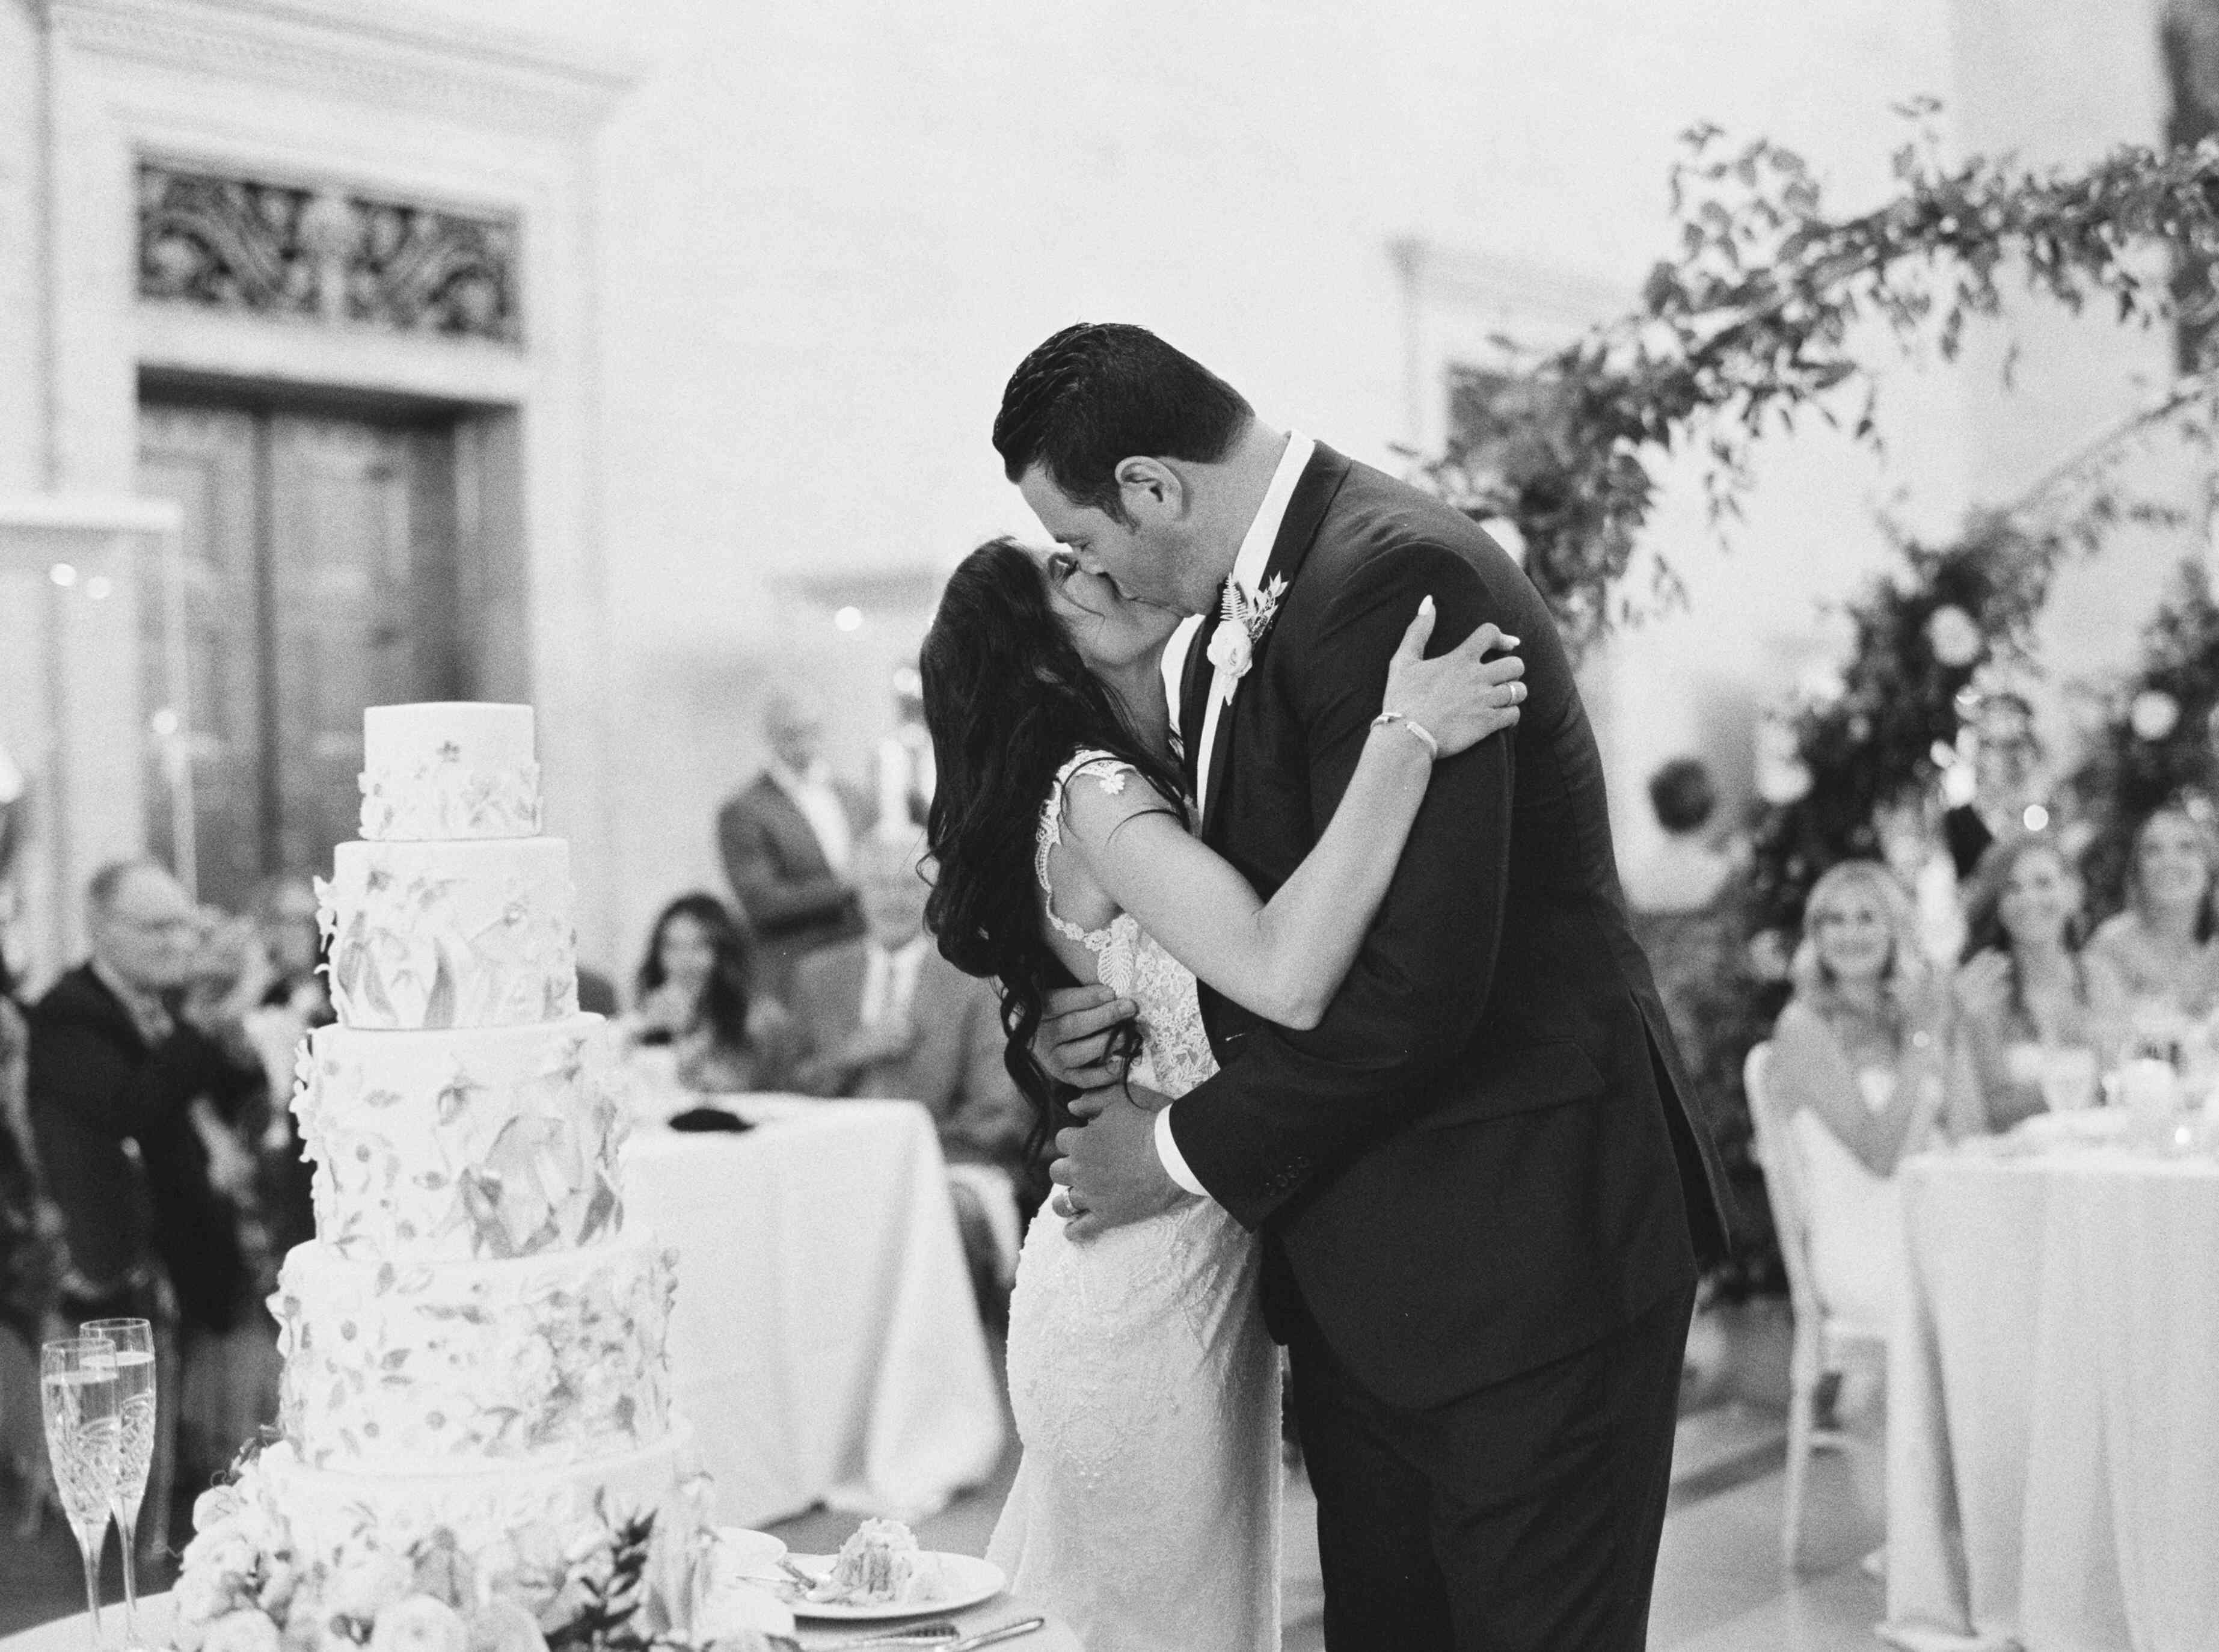 The couple kisses after cutting their wedding cake